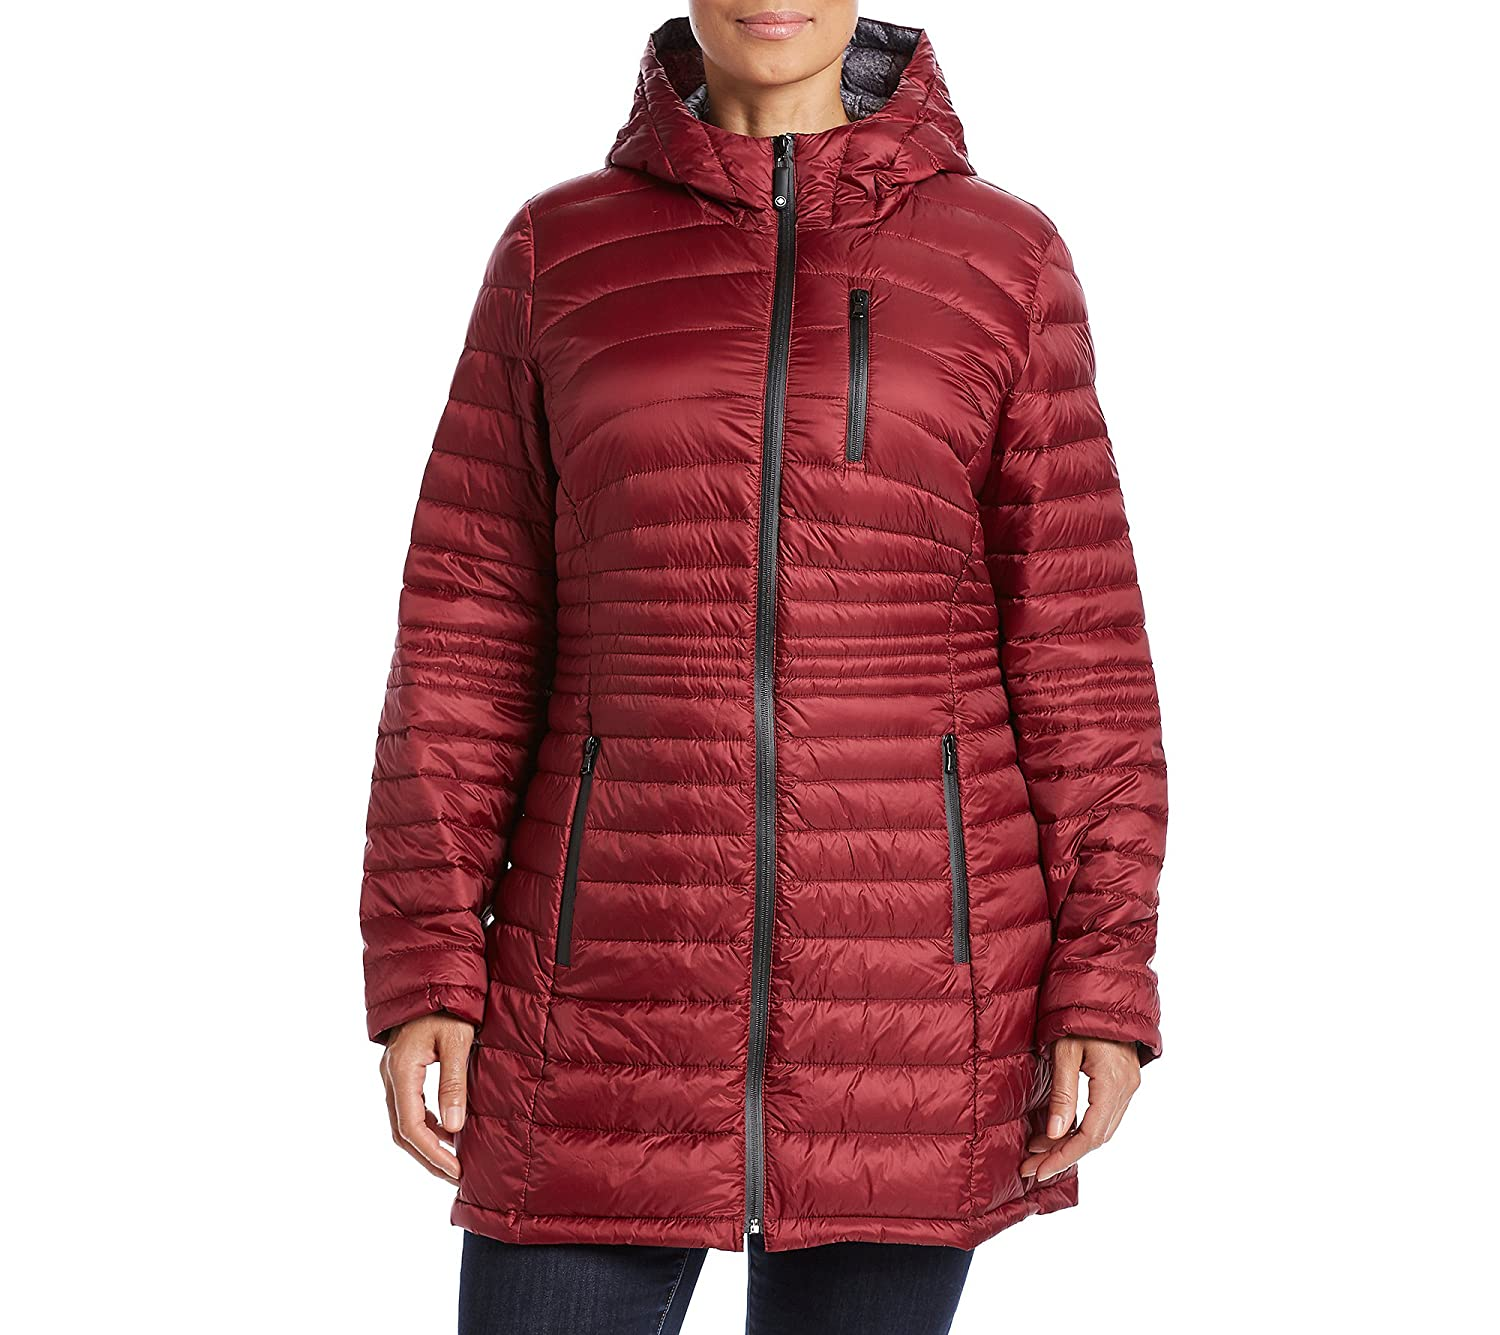 04db7ccc2 HFX Halifax Plus Size Packable Down Jacket